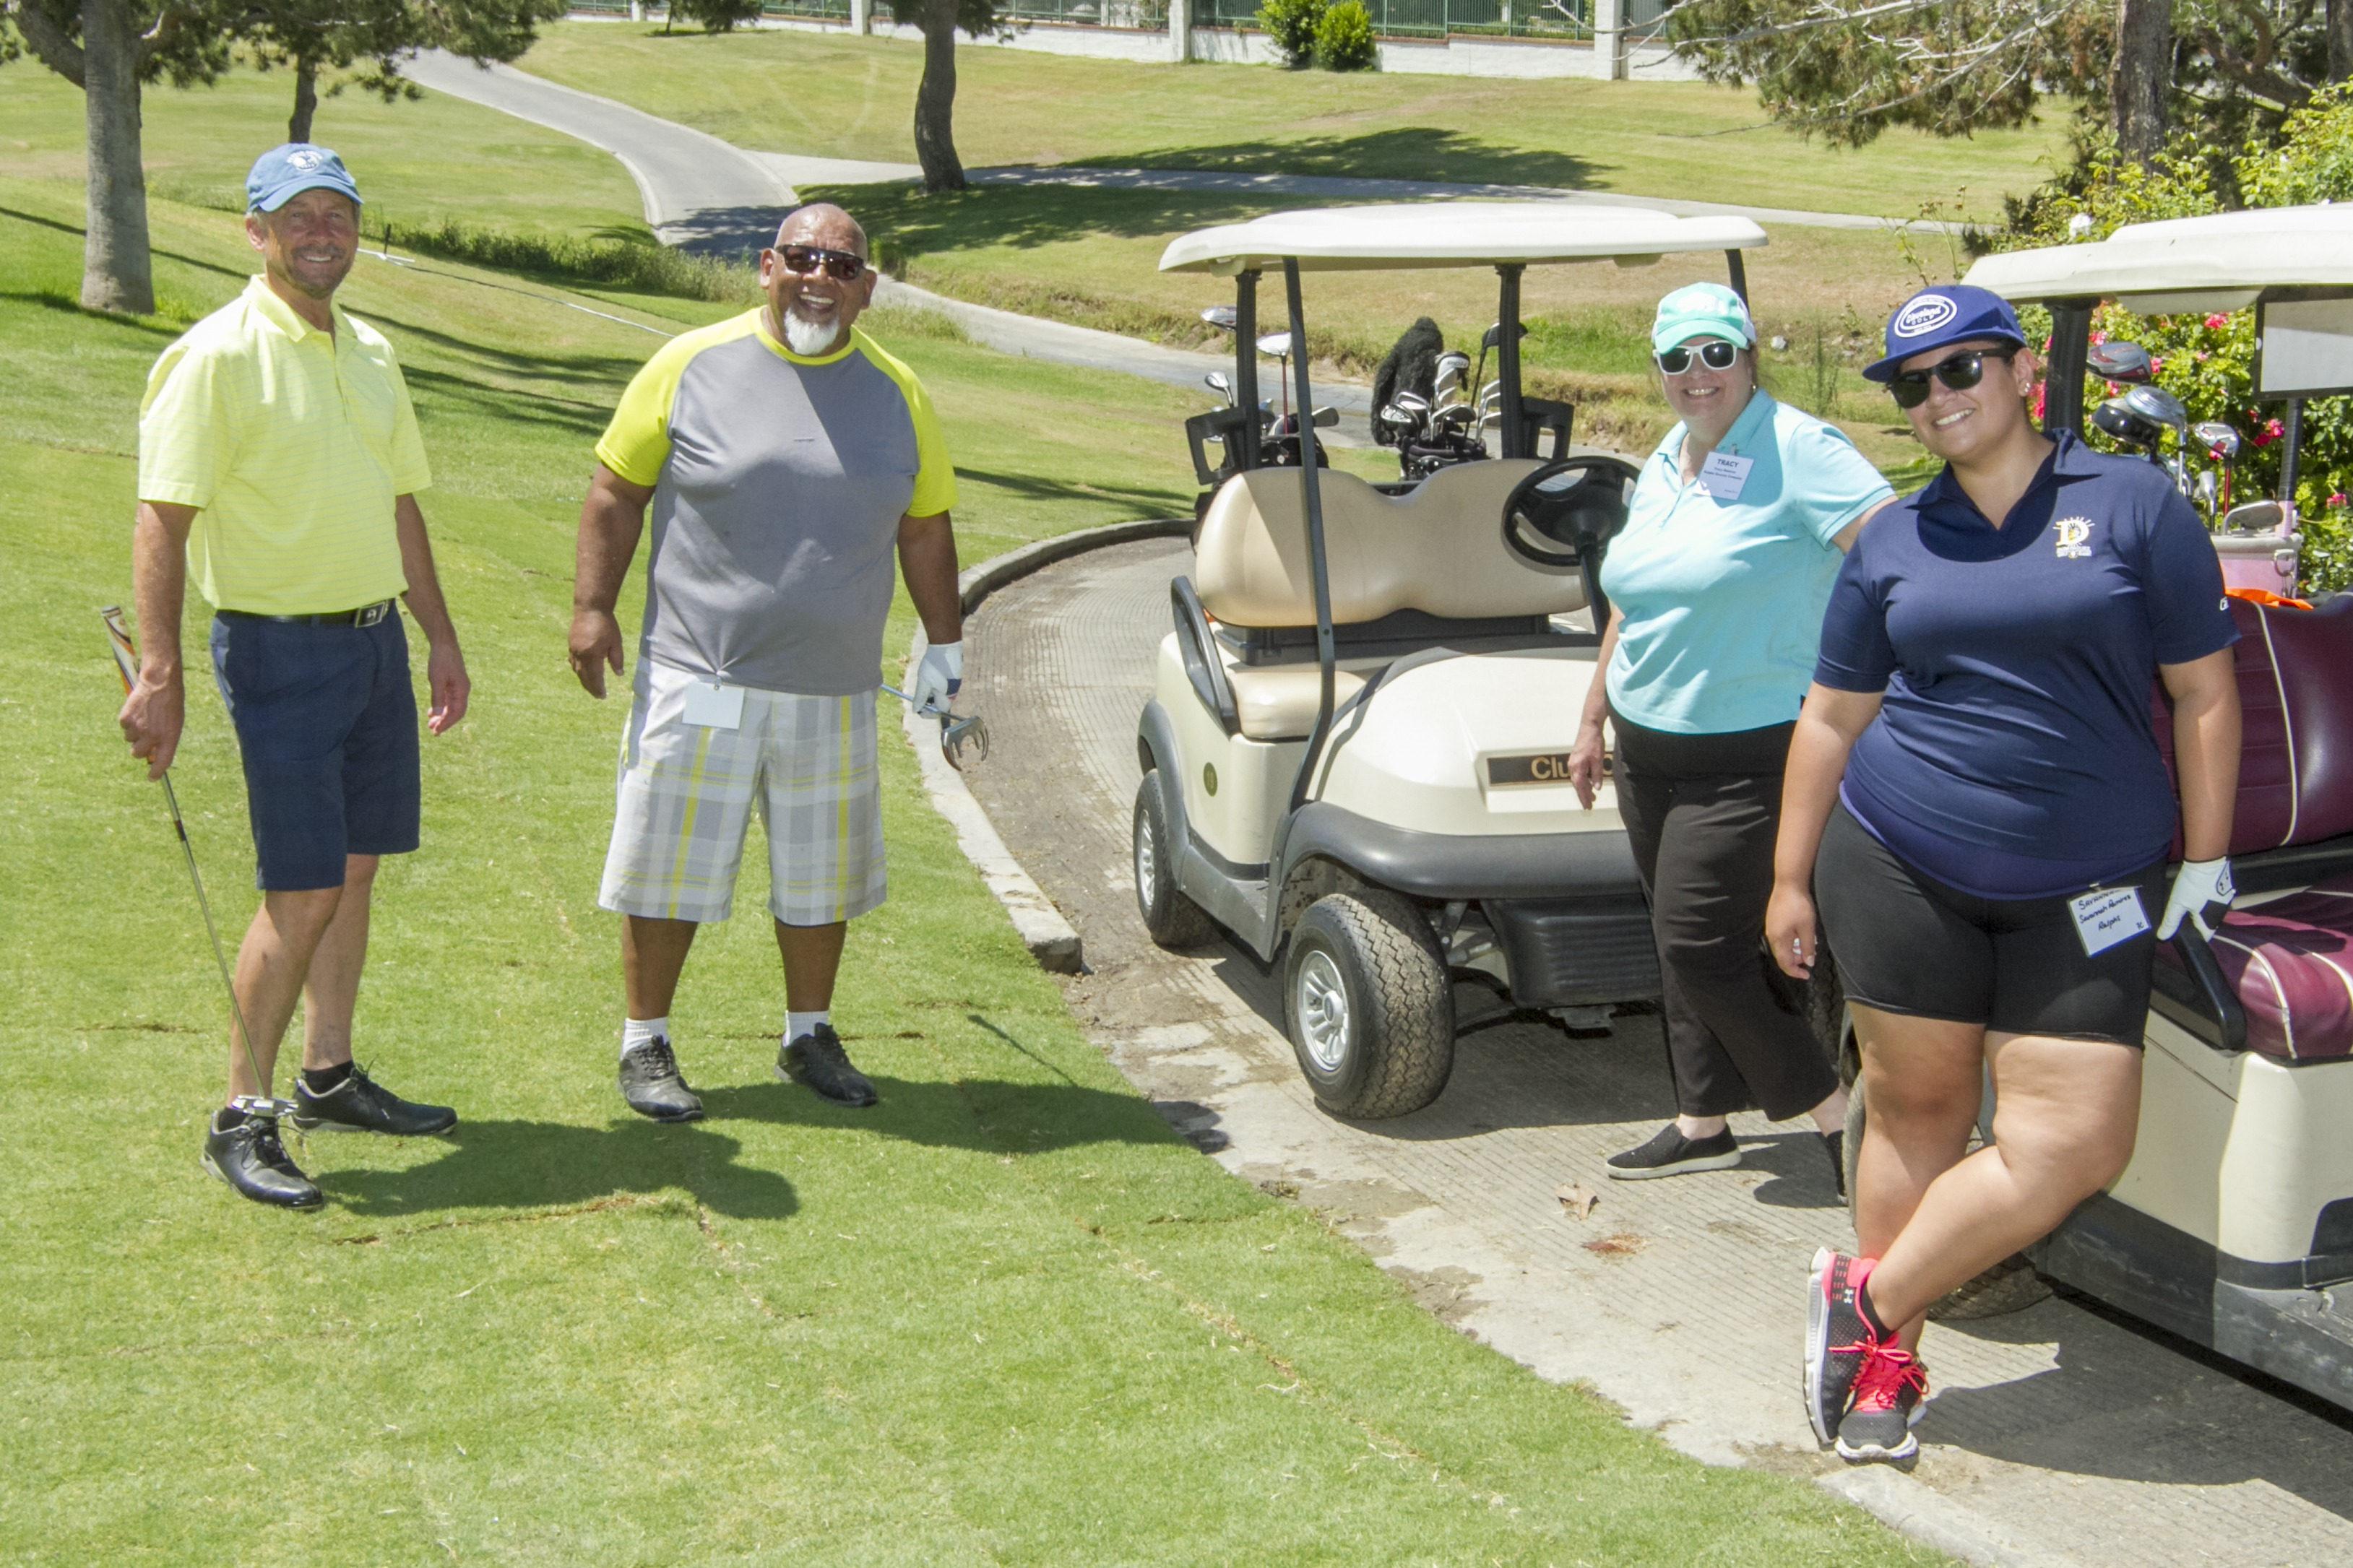 Phil Guardia with The Pinery, LLC, on the course with Jesse, Tracy, and Savannah Ramirez of Ralphs Grocery Company.